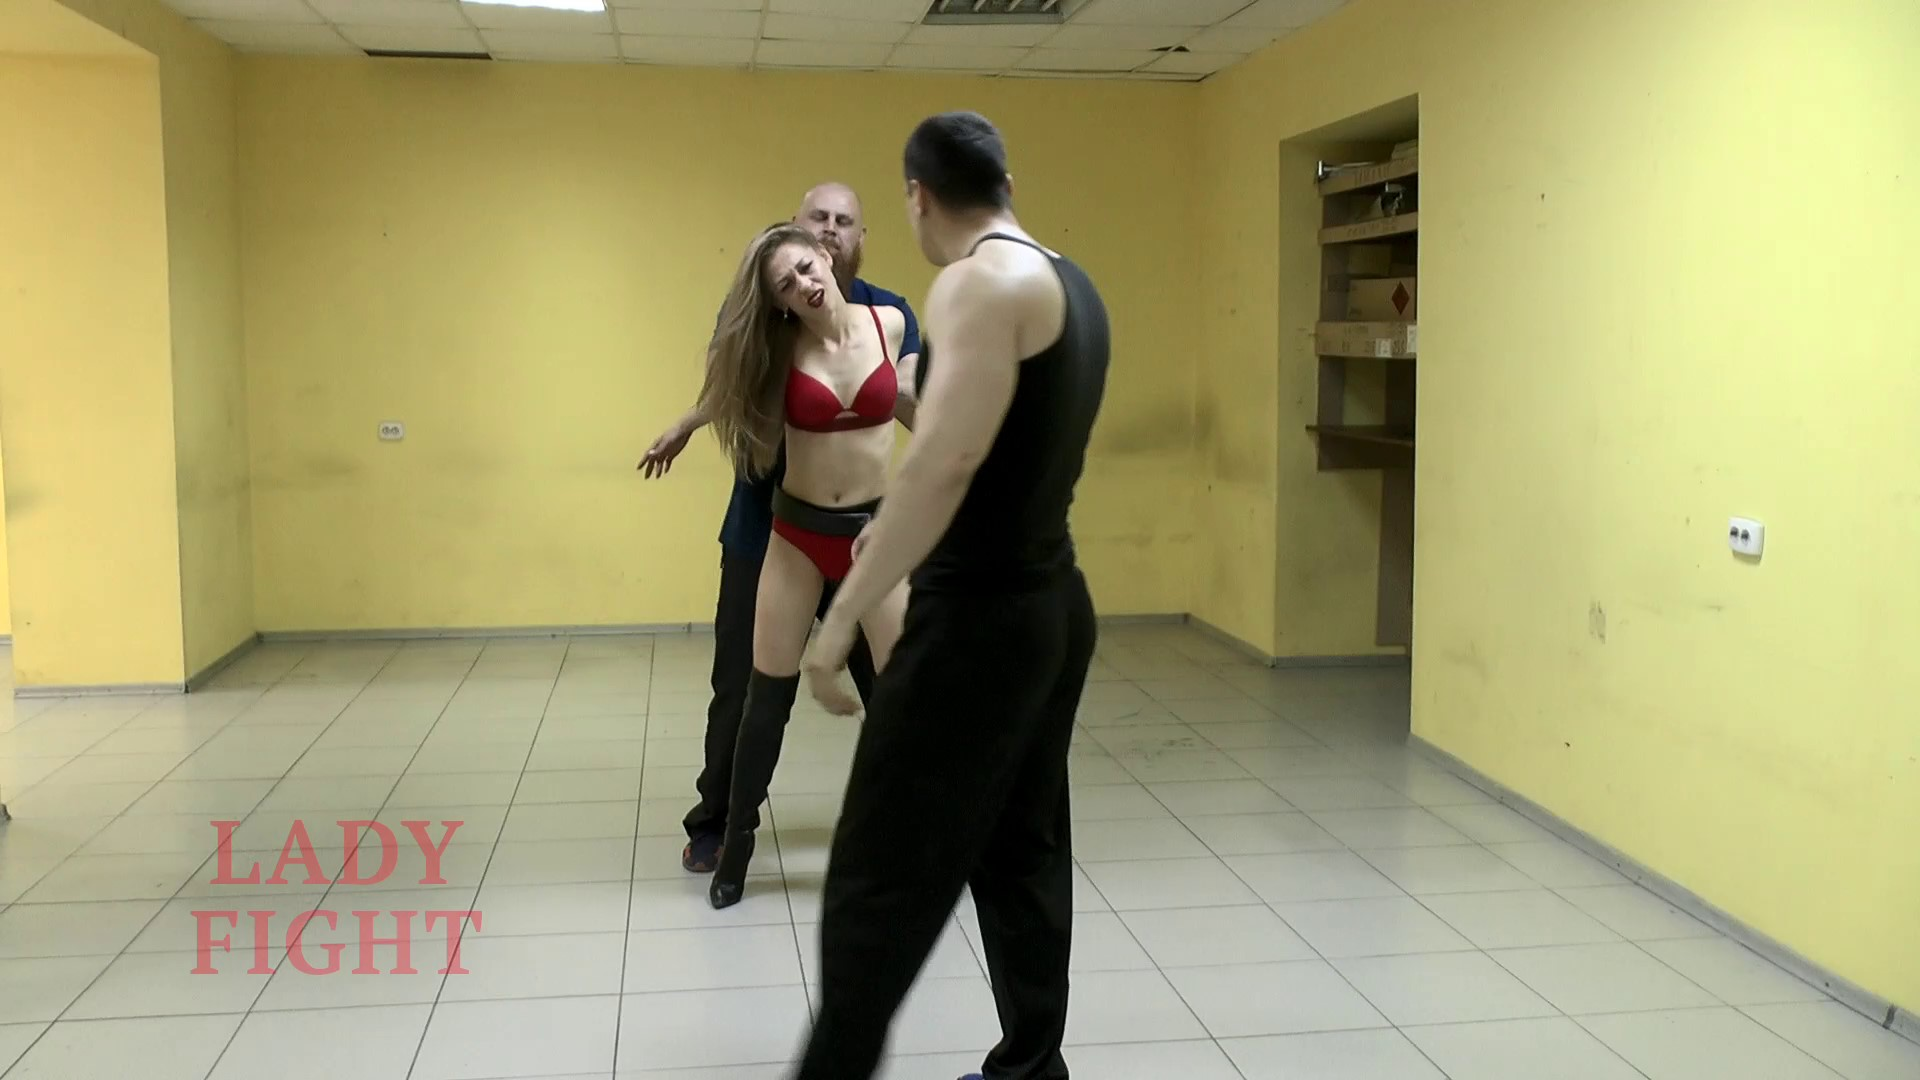 LADYFIGHT-Deadly-Wrestling-For-Lora-110